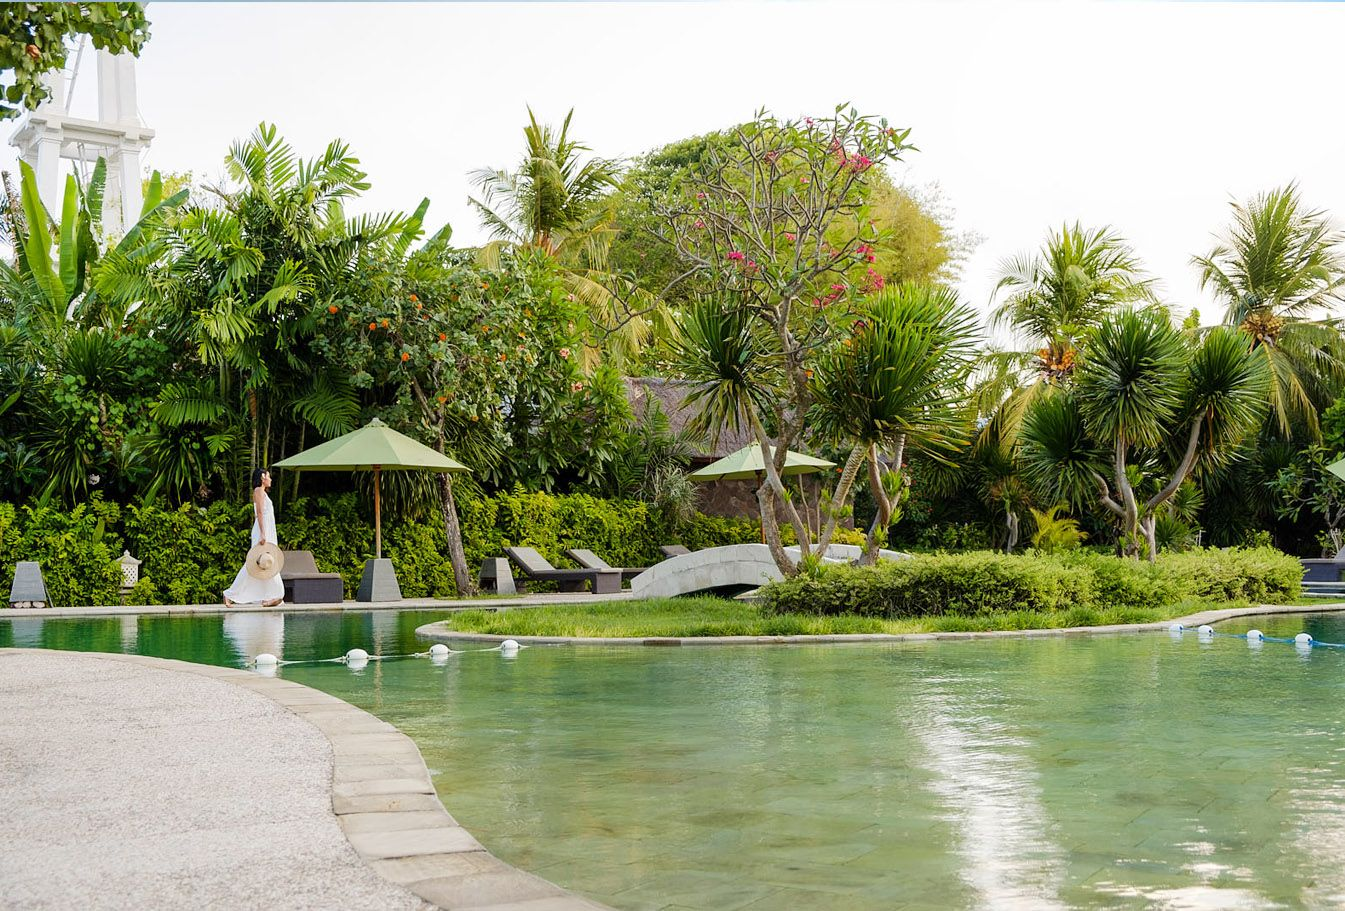 Double tap if you wish you were here basking in the tropical sun and dipping your toes in #TheTAOBali pool!  #TheTanjungBenoaBeachResort #TheTanjungBenoa  #Bali